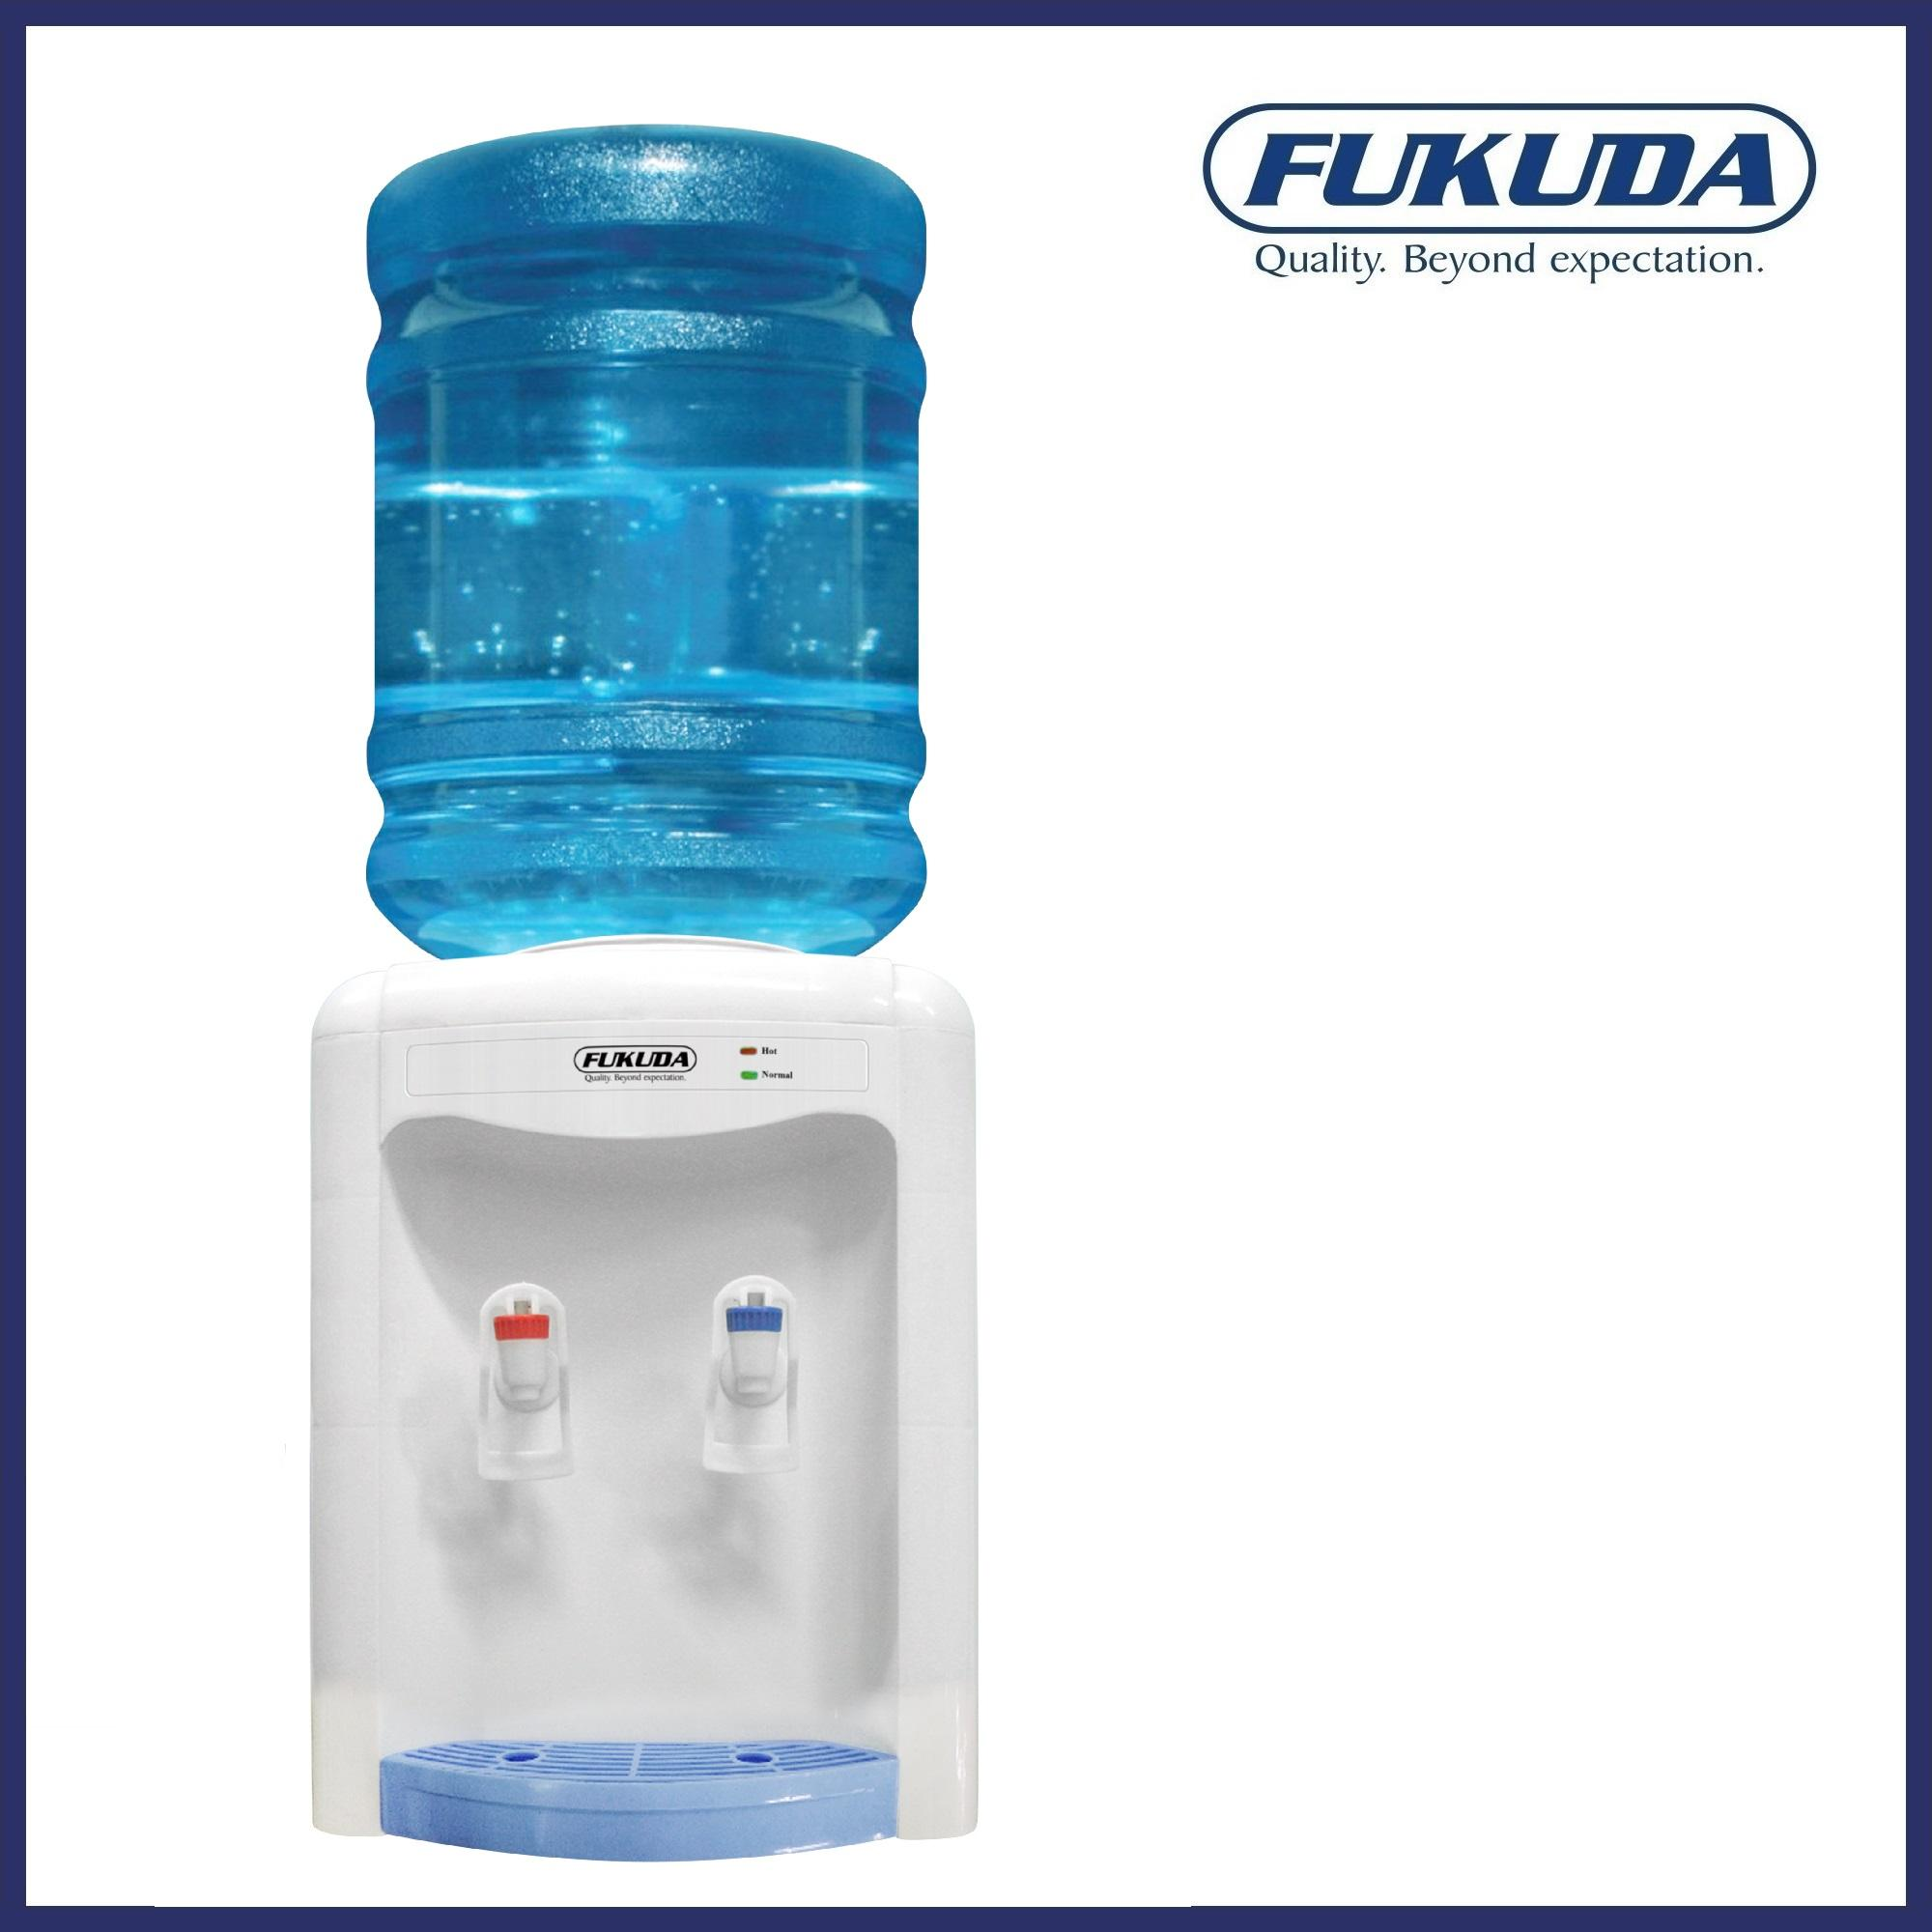 Fukuda Fwd-788l Table Top Hot And Normal Water Dispenser (white) By Fukuda.